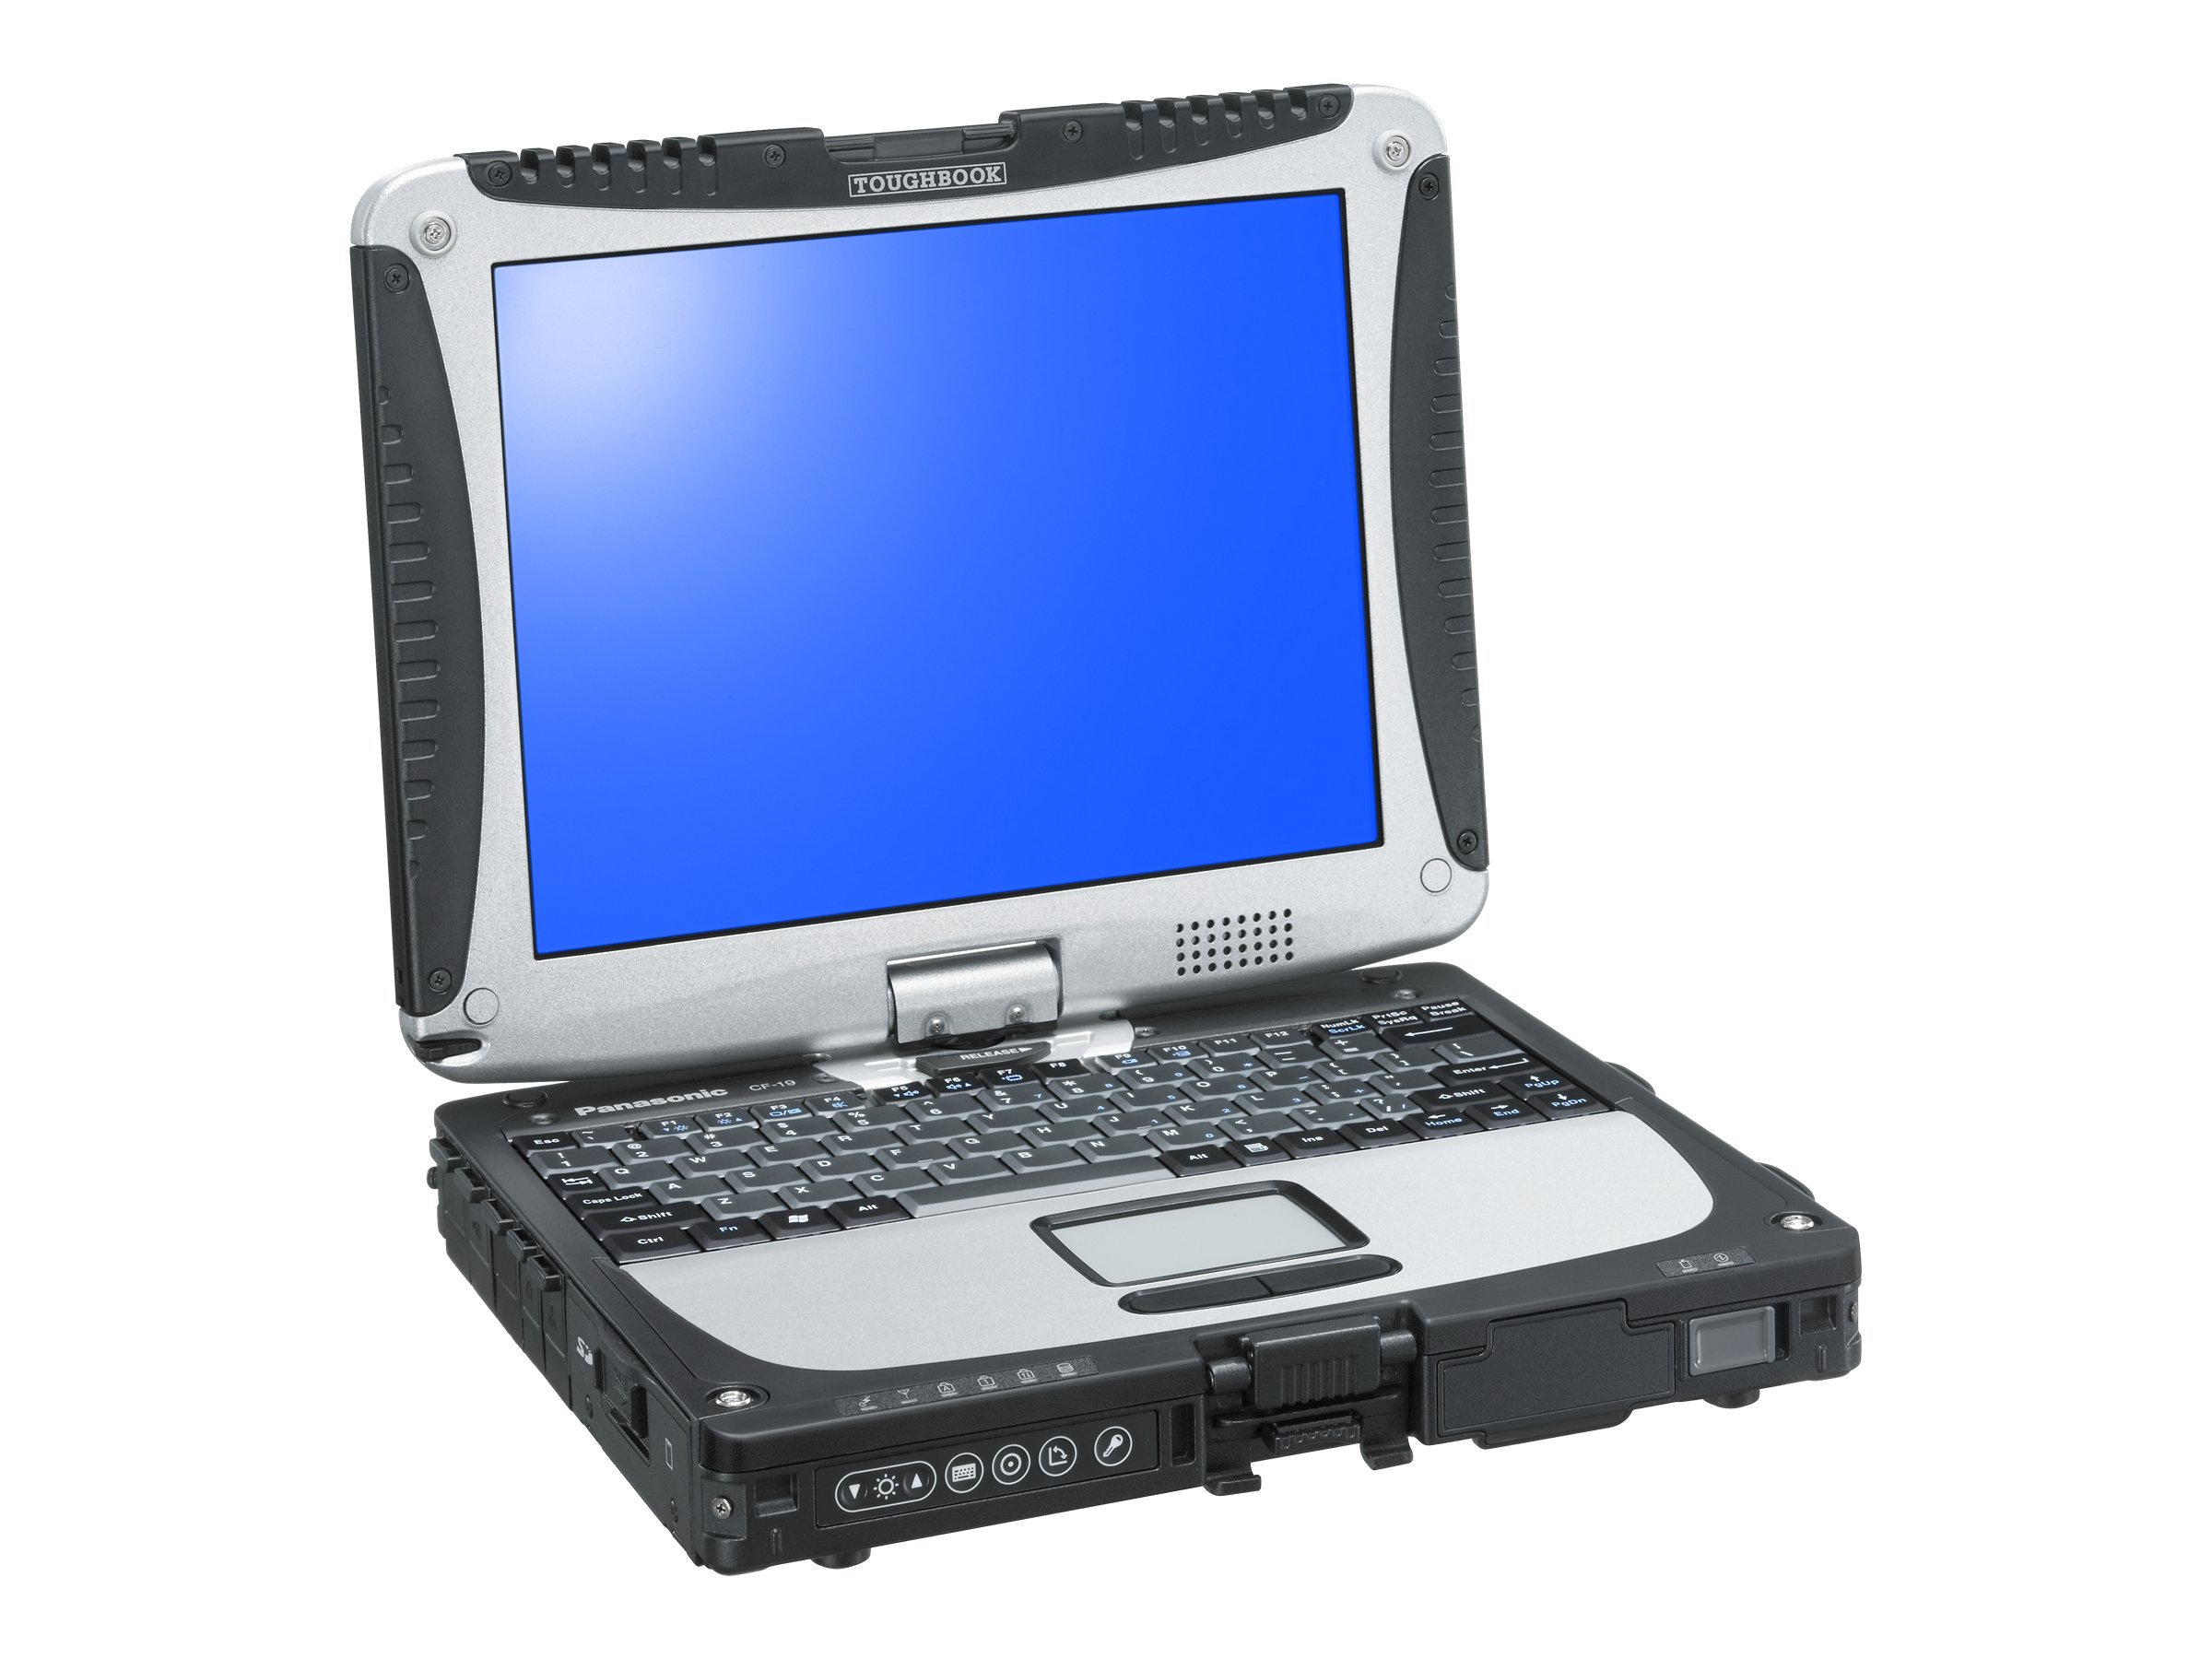 Panasonic Toughbook 19 4GB 256GB SSD 10.1 XGA MT